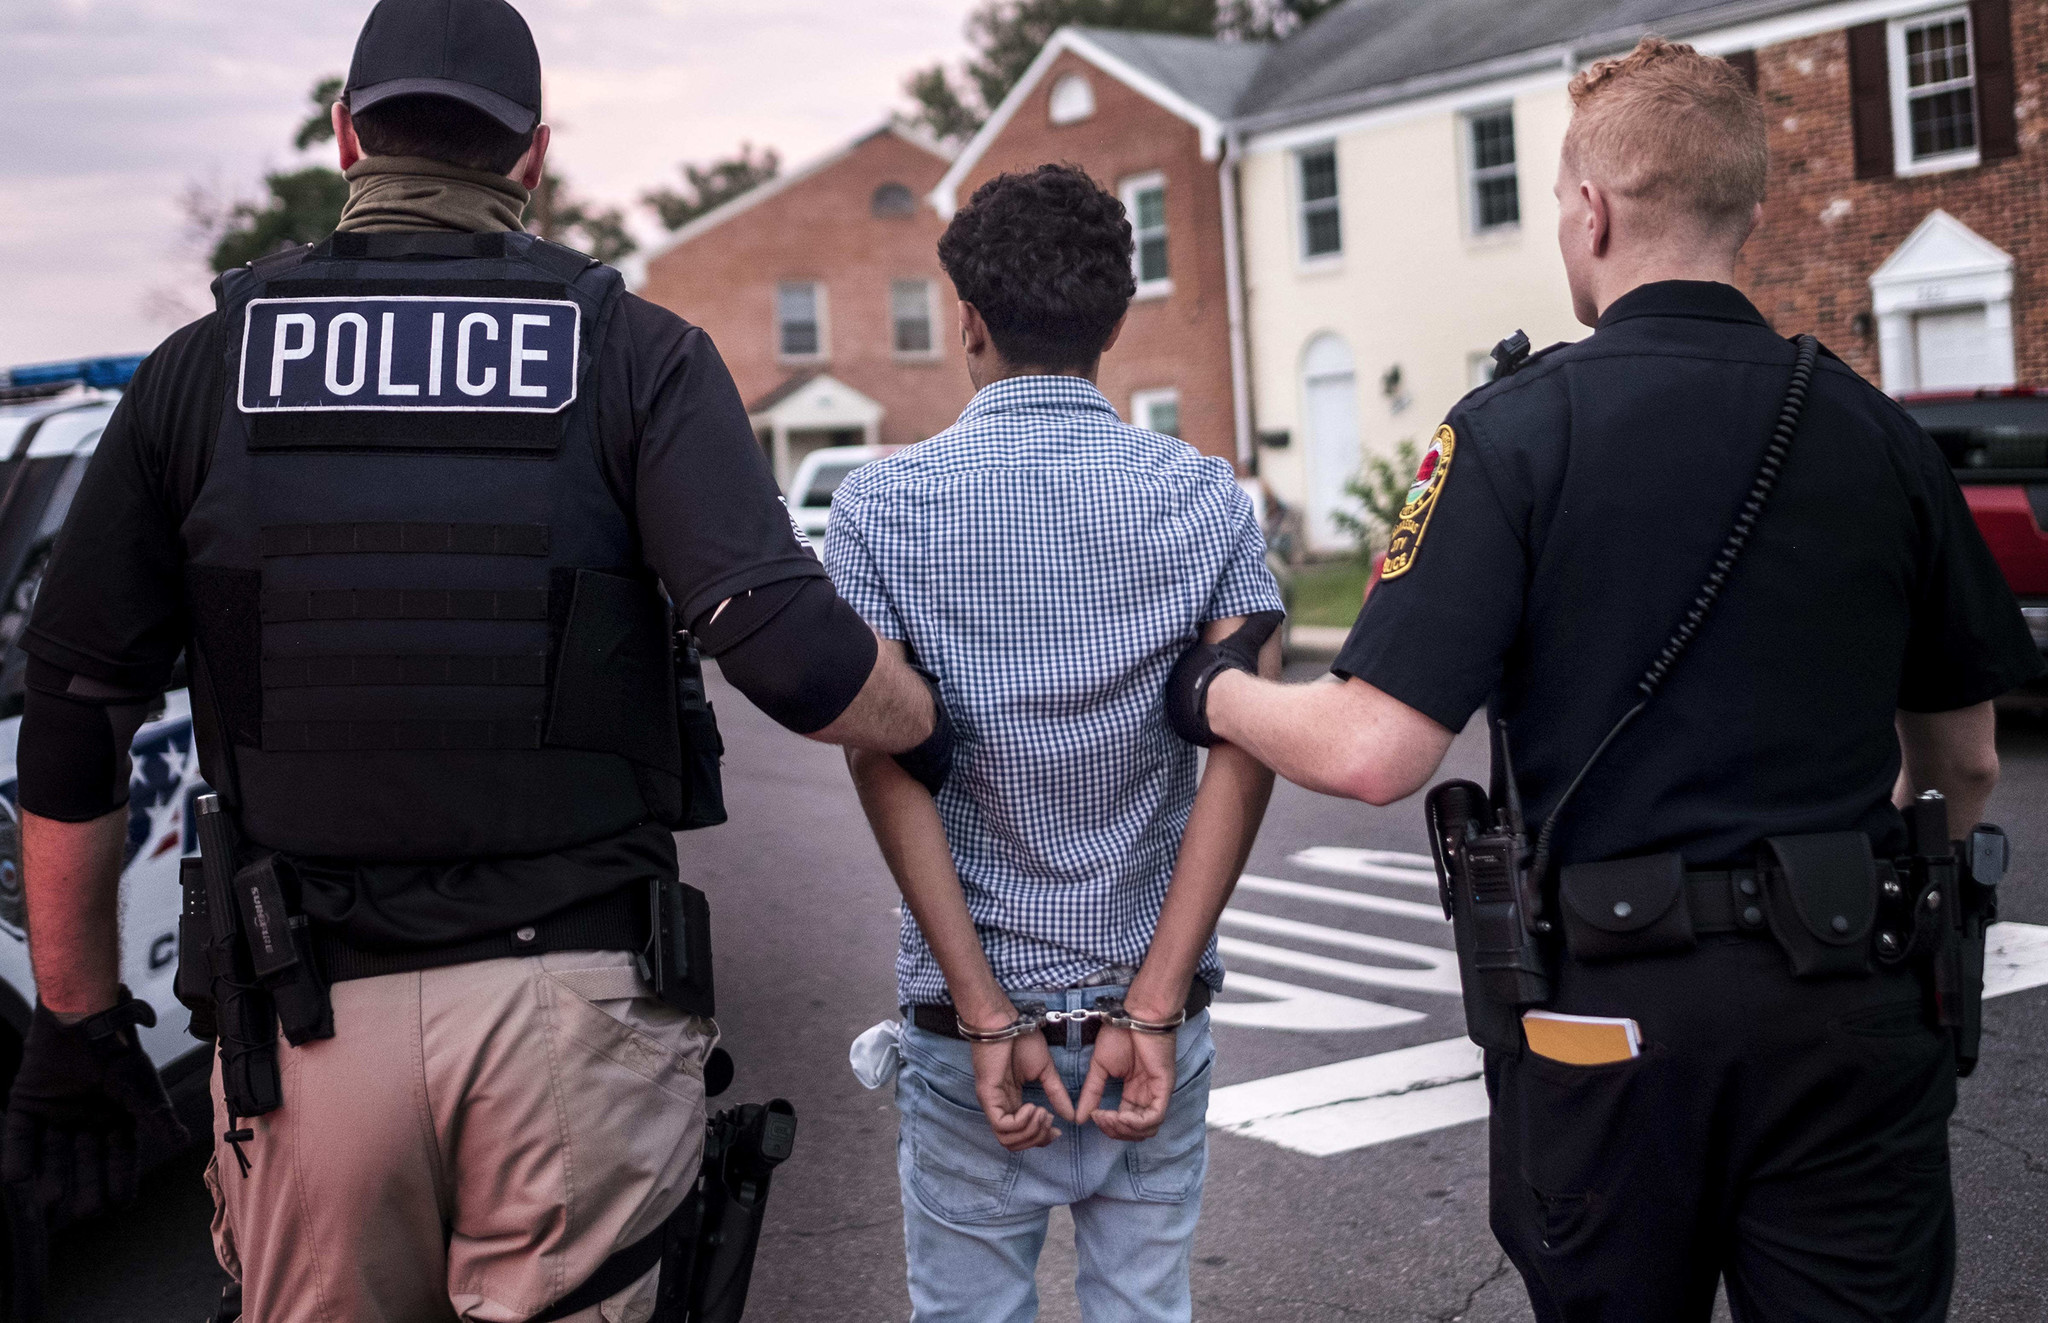 Officials at the agency commonly known as ICE praise Trump for putting teeth back into immigration enforcement, and they say their agency continues to